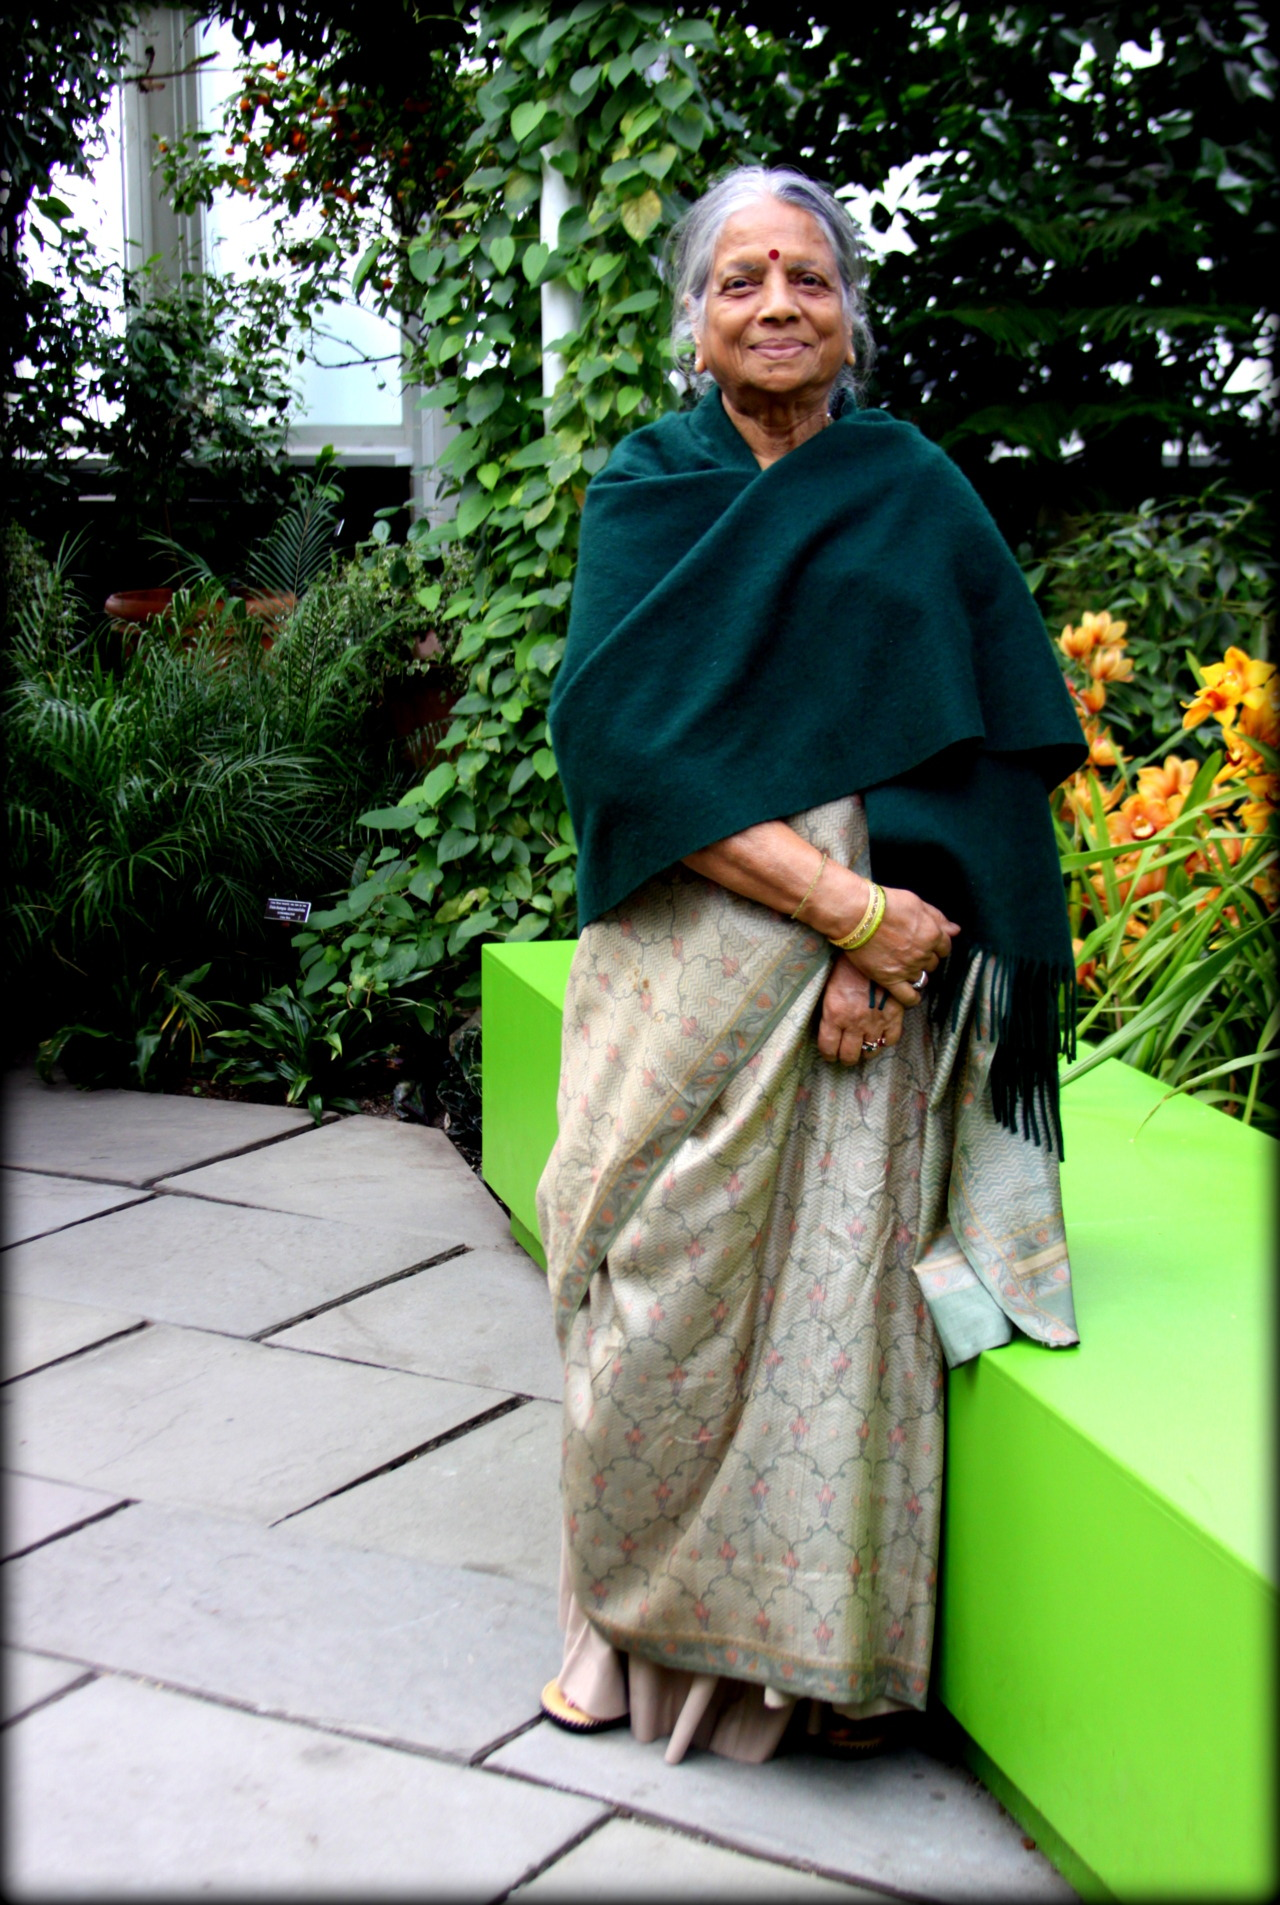 bridgeandtunnelgirl:  Indian woman with bindi at the New York's Botanical Garden She looked so beautiful enjoying the scenery, looking at the beautiful orchids, wearing a wonderful lightweight sari and a wrap, the tones of which blended so well with her surroundings and I could not resist asking her to pose for this photo.  Isn't she beautiful! Thanks so much for sharing. ~AR